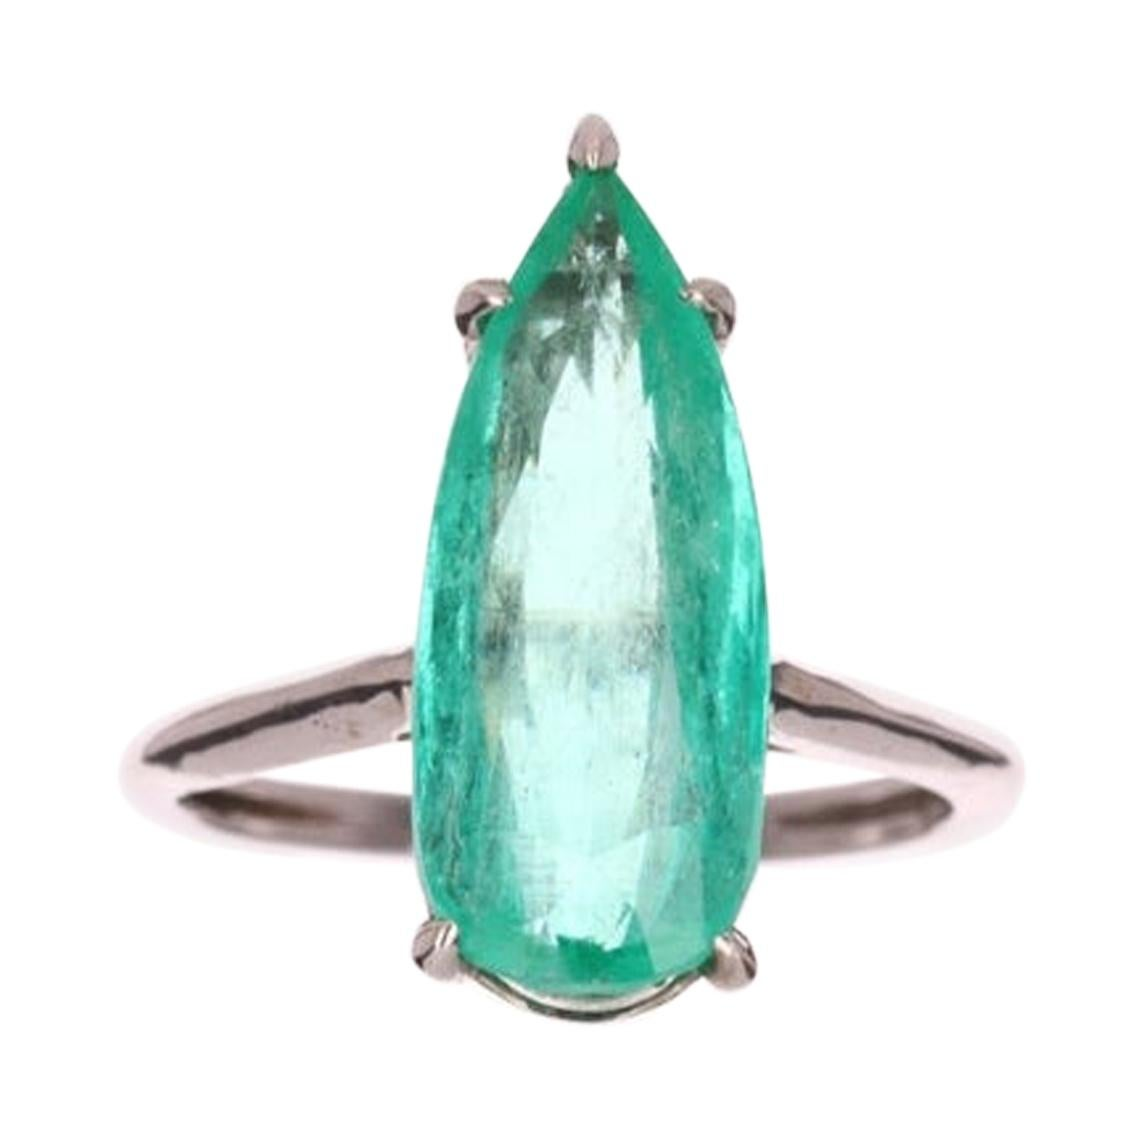 5.22cts 18K Colombian Emerald Pear Cut Solitaire White Gold Engagement Ring